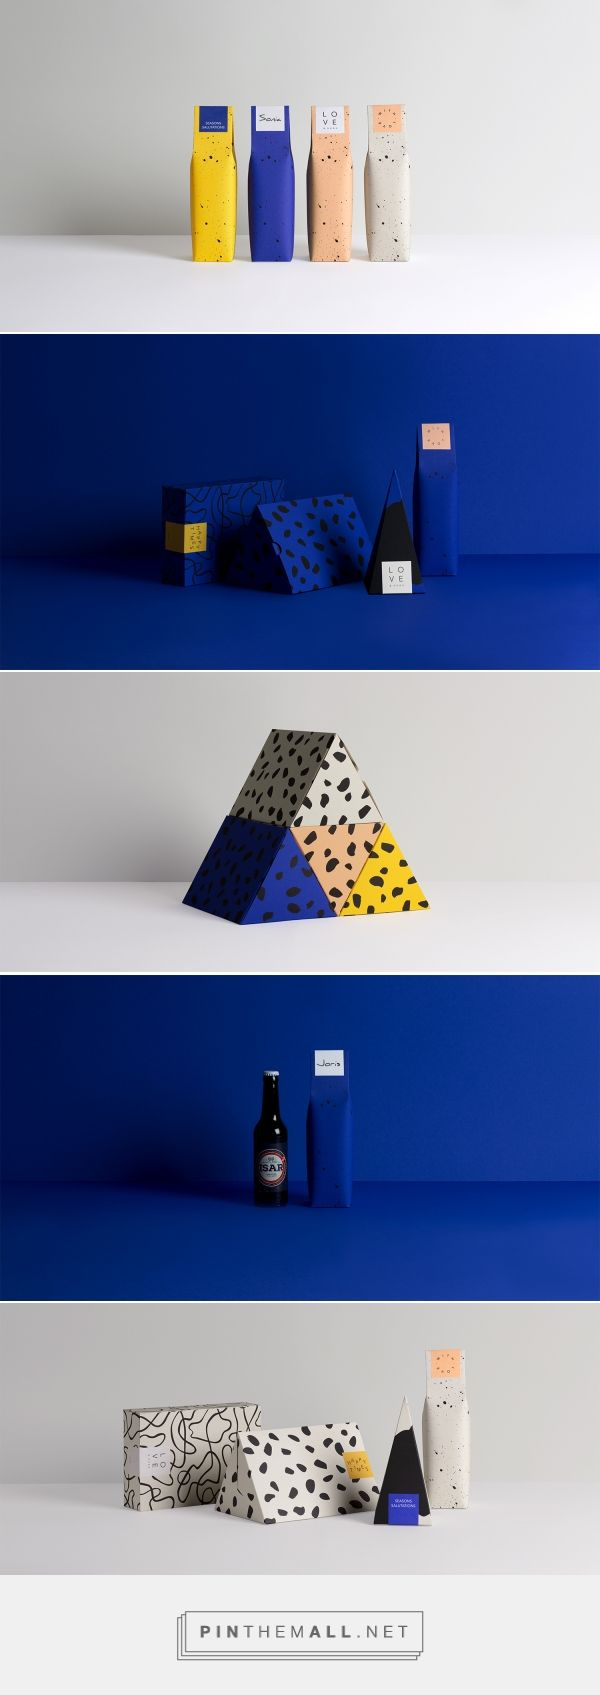 Wrappu - Rethinking Giftboxes design by Micha Kumpf  & Ngaire Wex - http://www.packagingoftheworld.com/2017/02/wrappu-rethinking-giftboxes.html